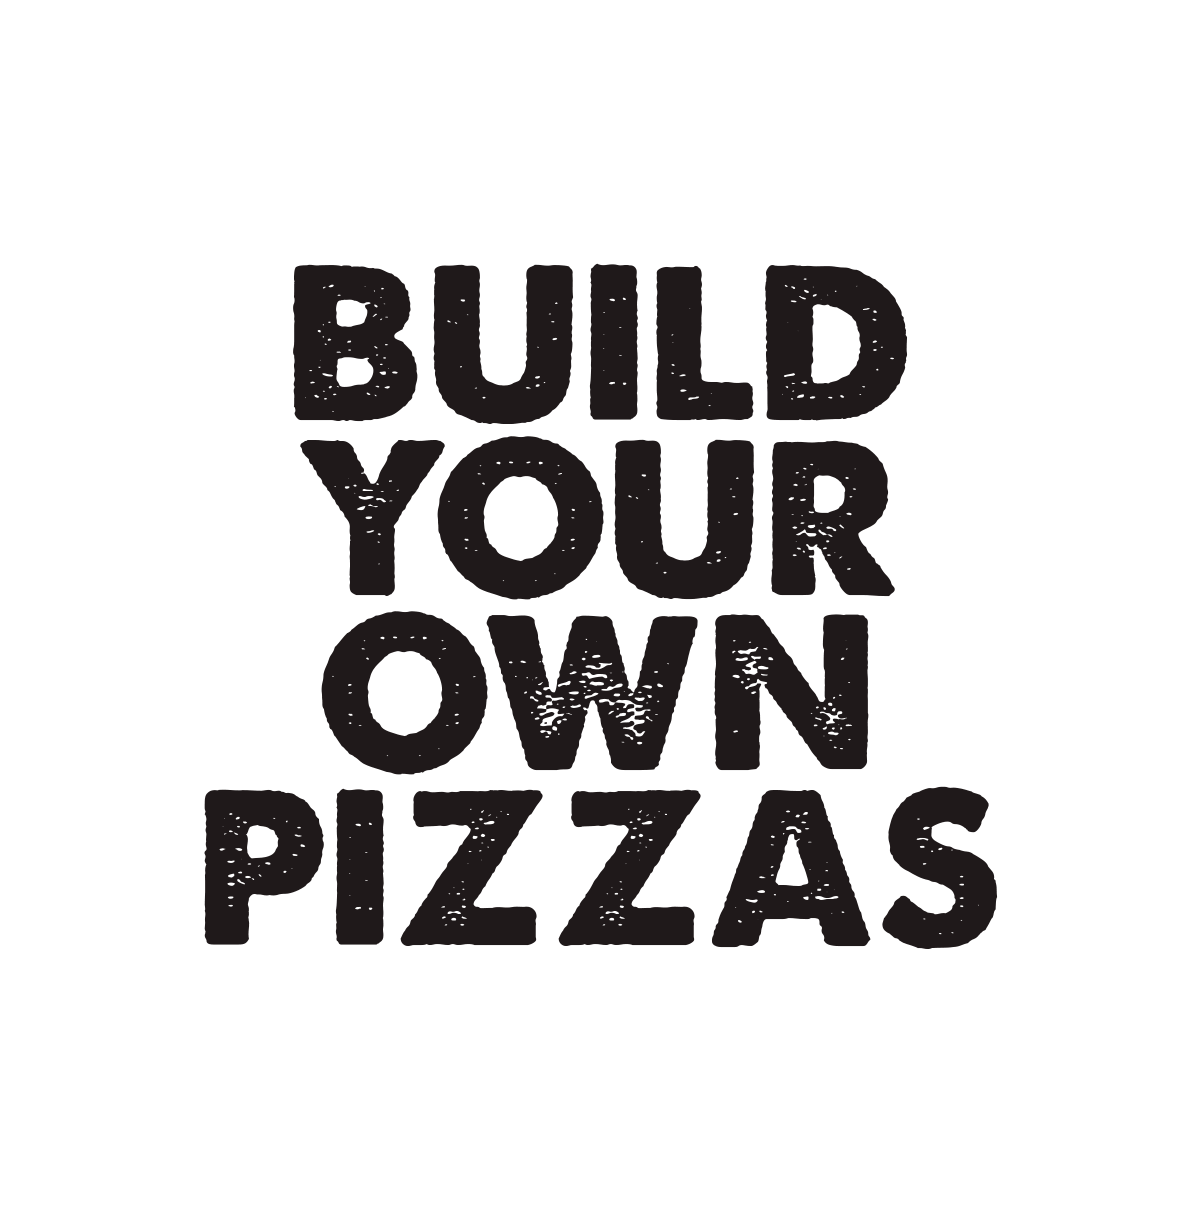 Build your own pizza with Pizzawalas